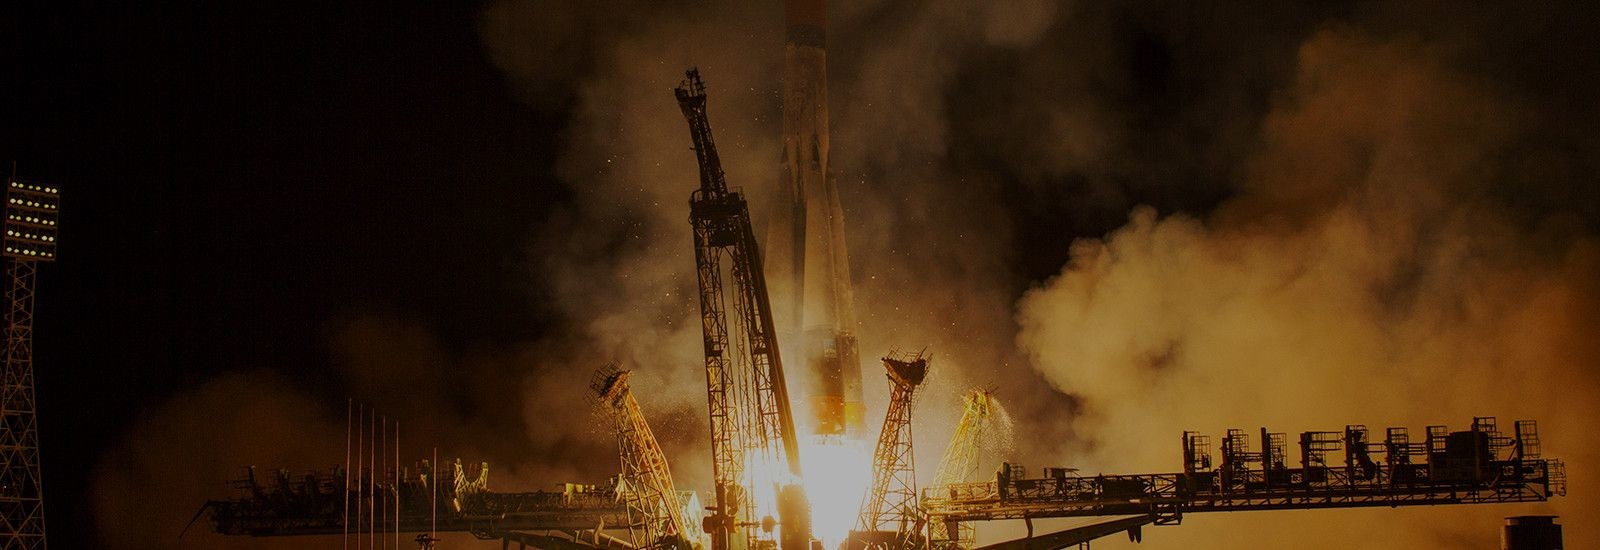 The Baikonur Cosmodrome